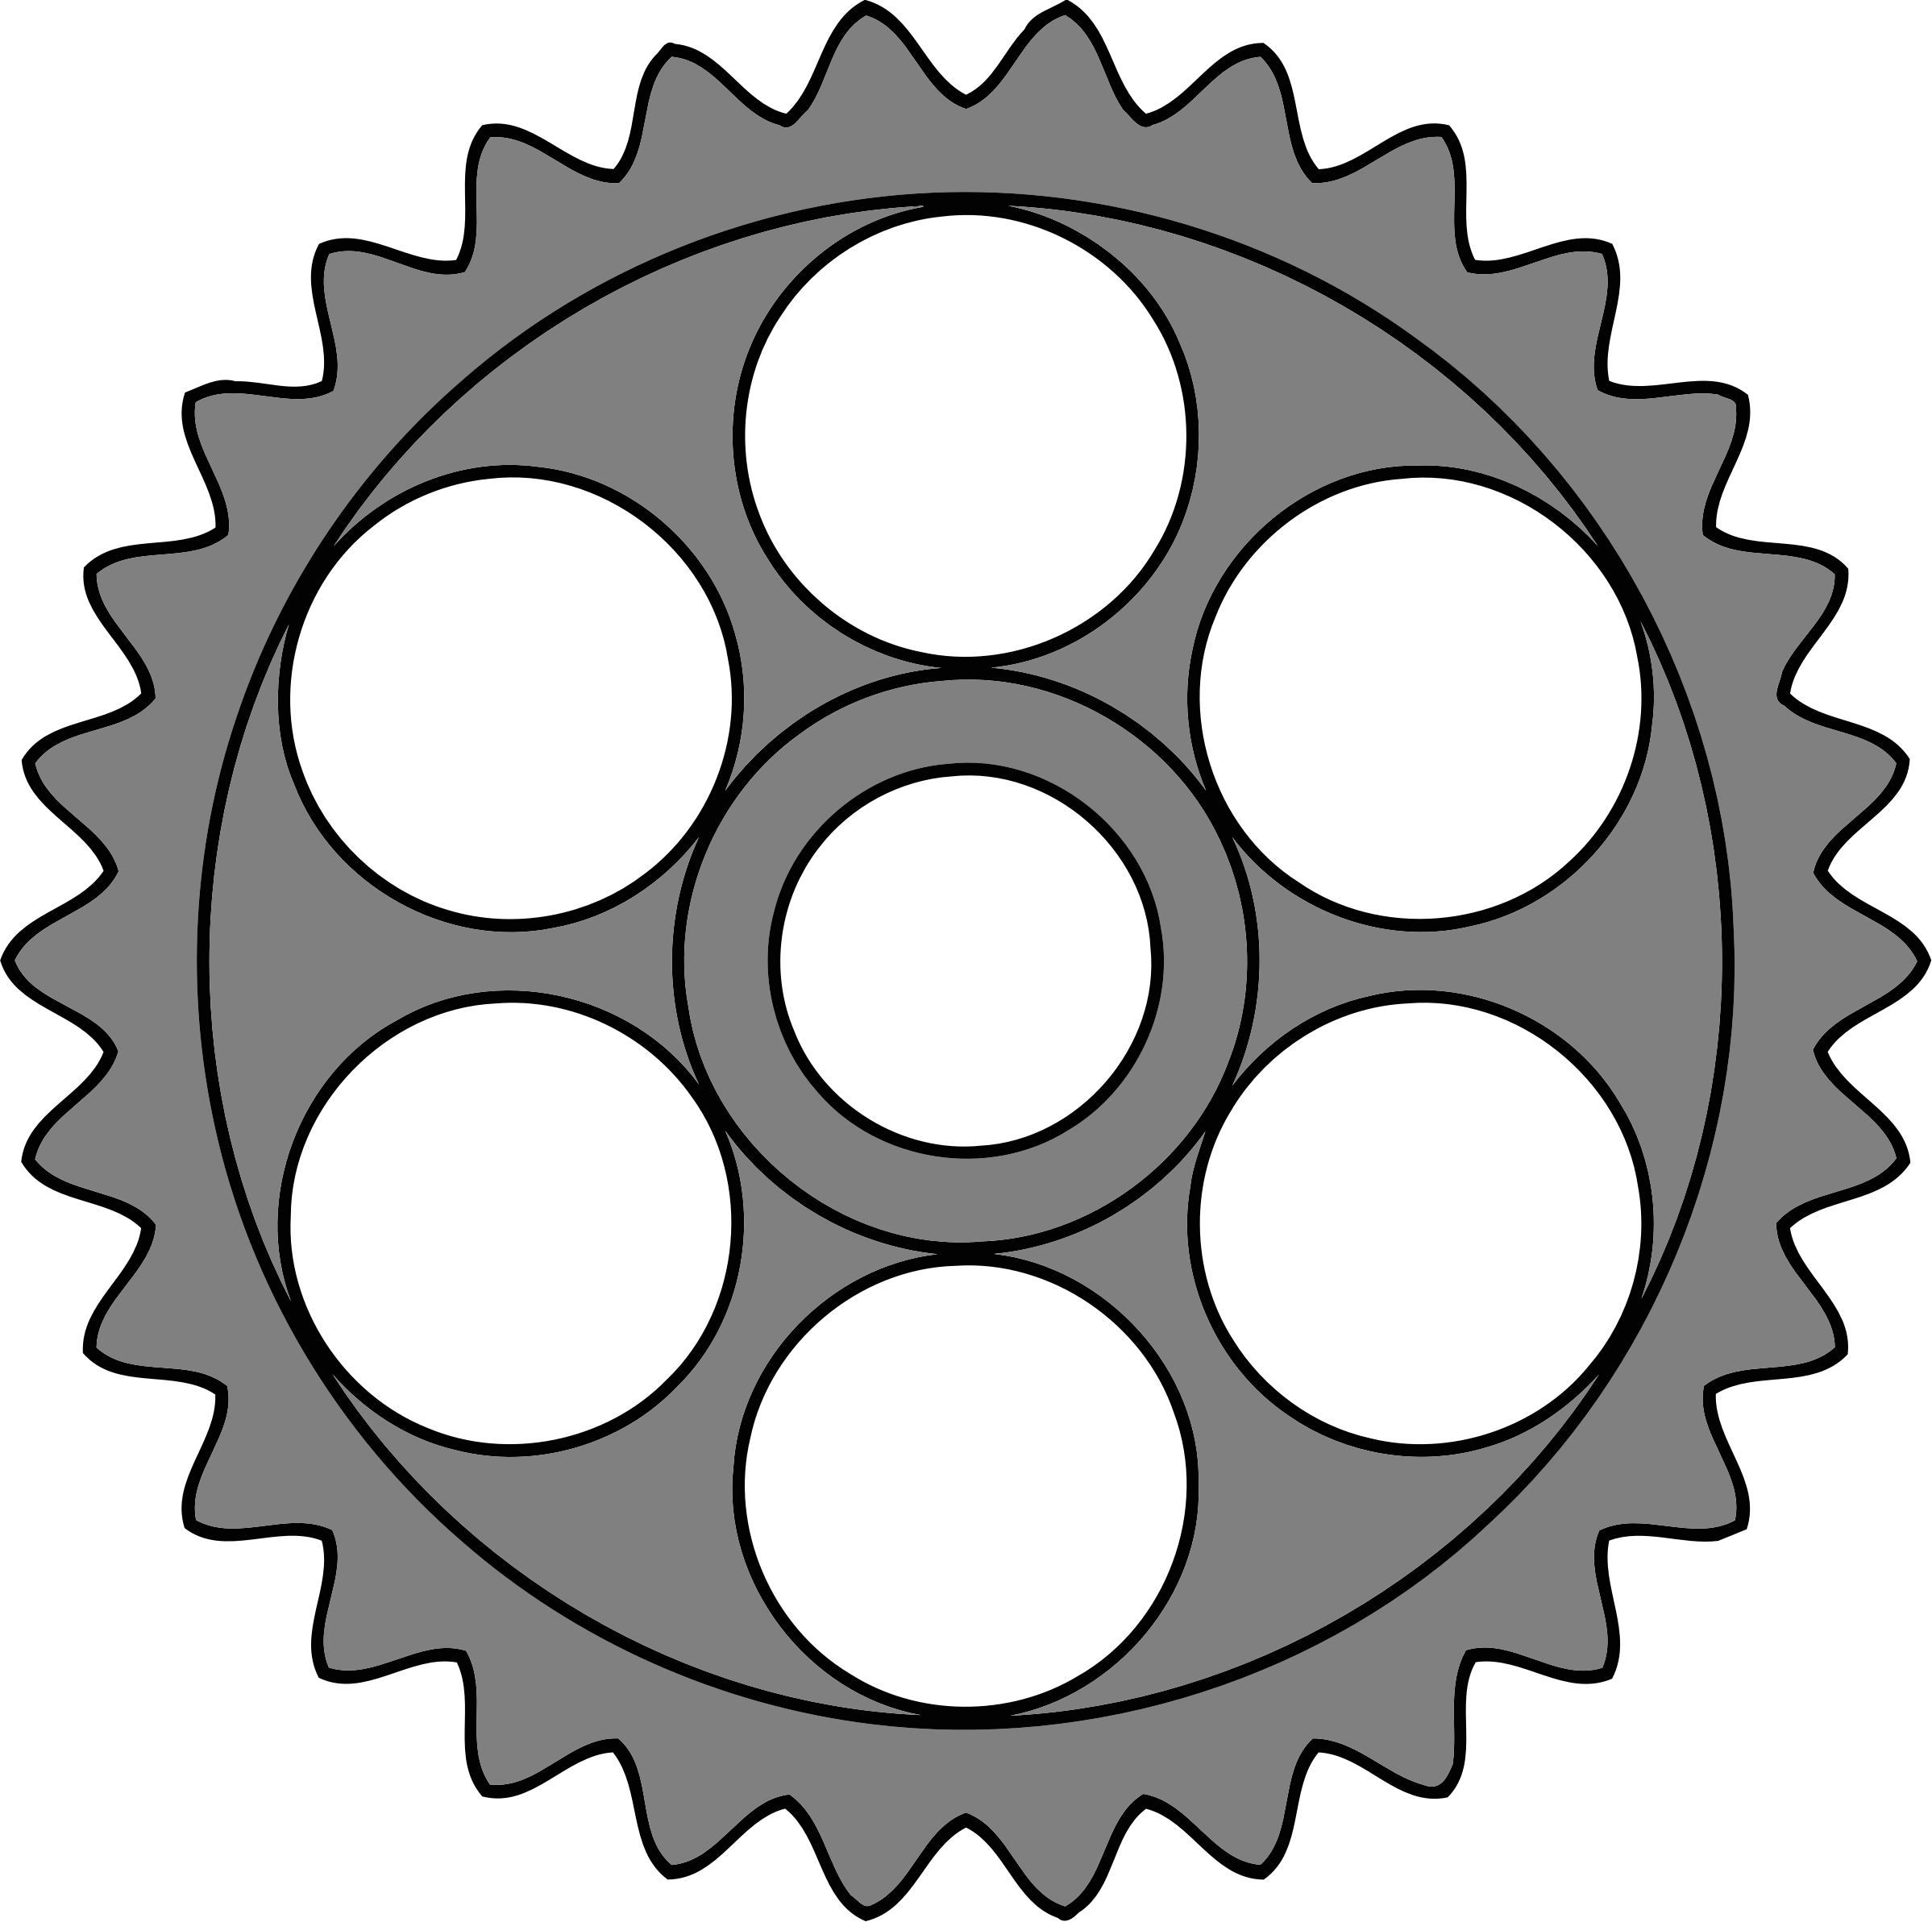 30-tooth gear with circular holes by Firkin